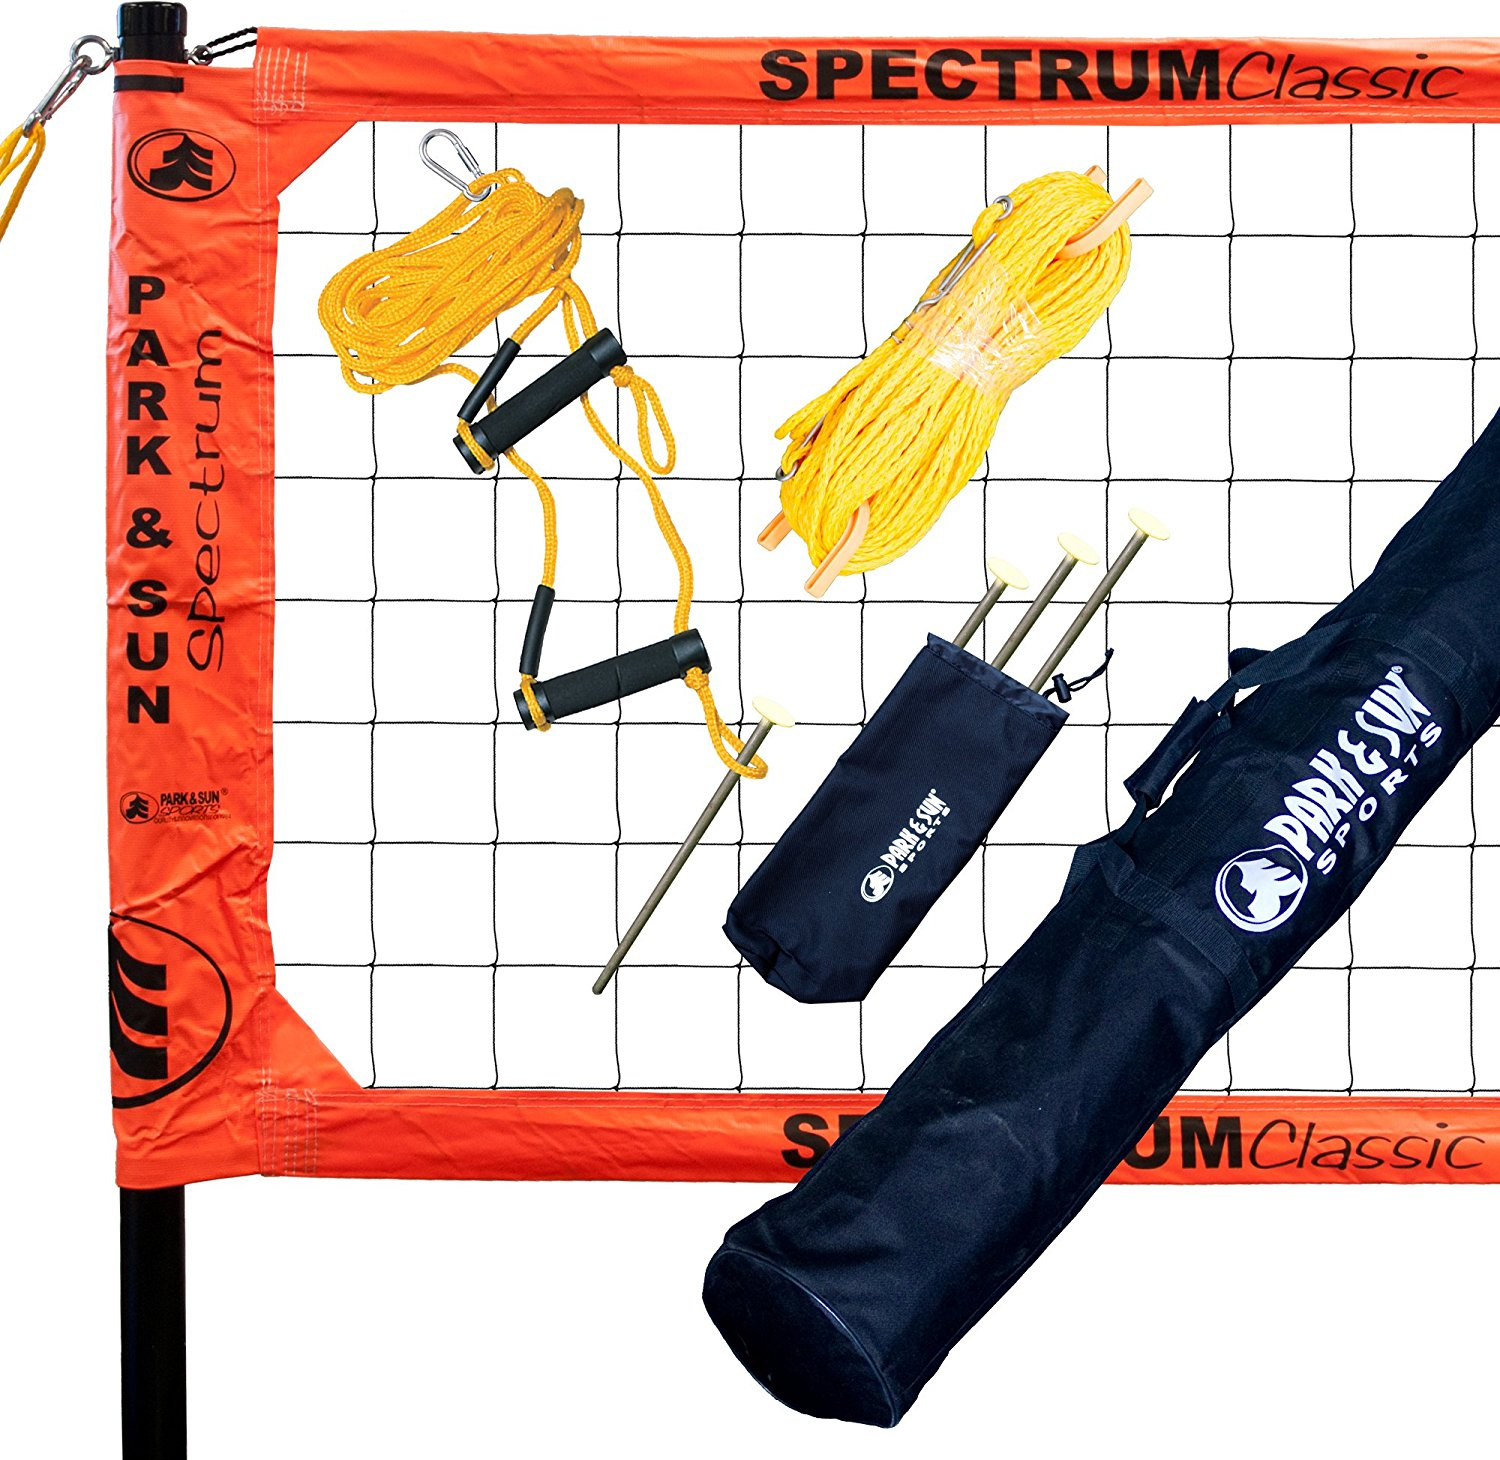 Park & Sun Sports Spectrum Classic: Portable Professional Outdoor Volleyball Net System – Available in 6 Colors